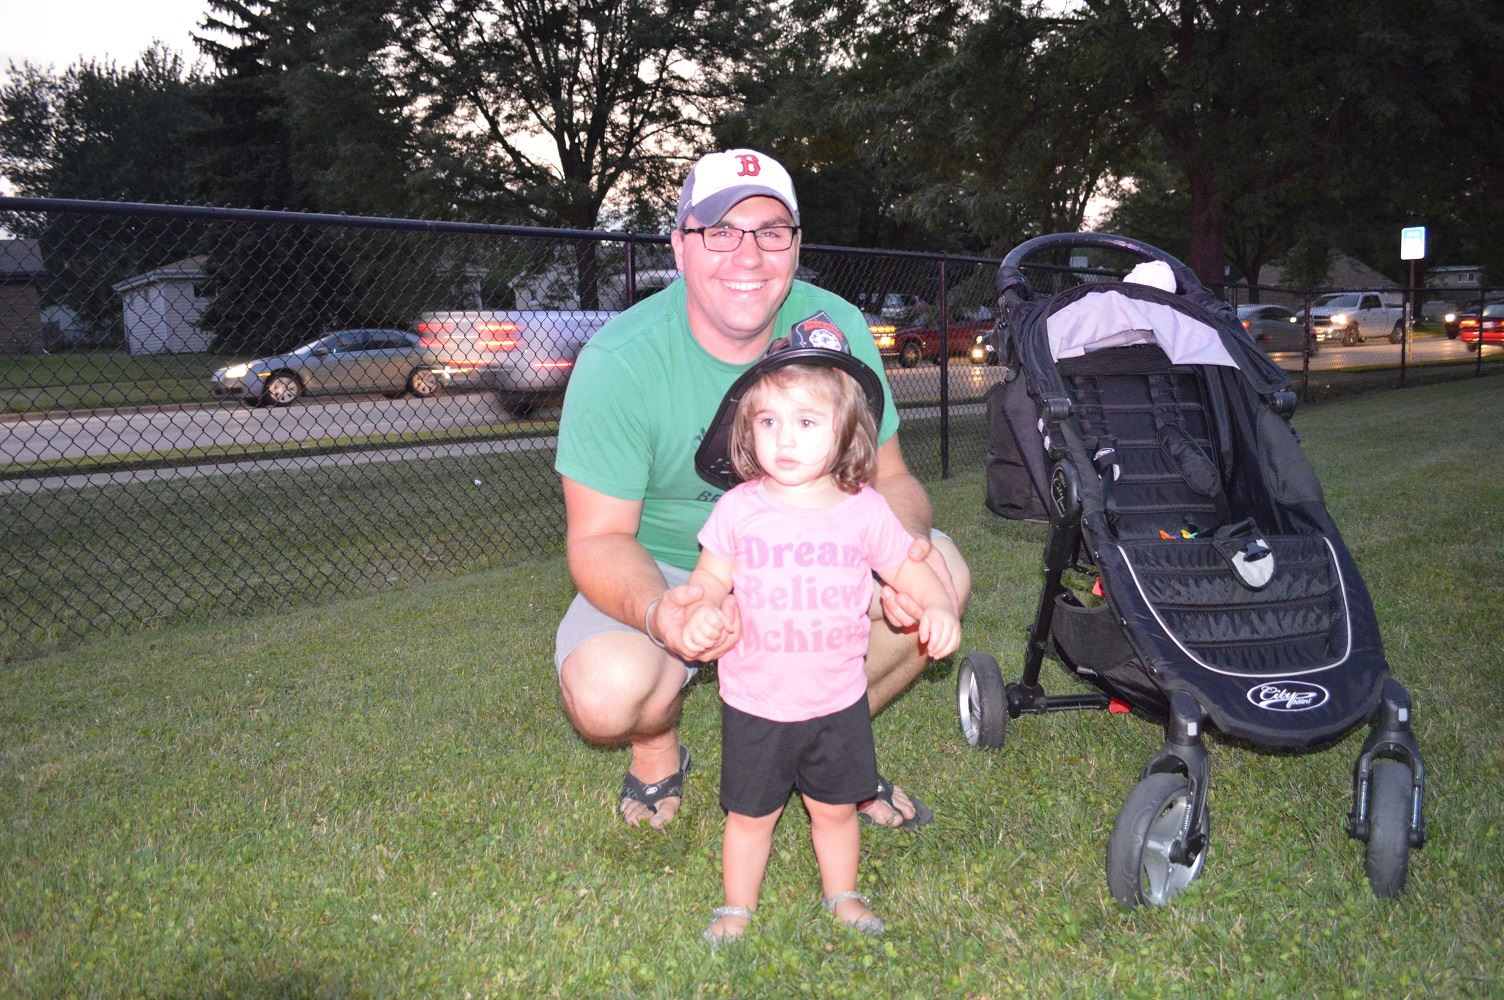 A Father and daughter pose for photo at National Night Out 2016 event in Villa Park.